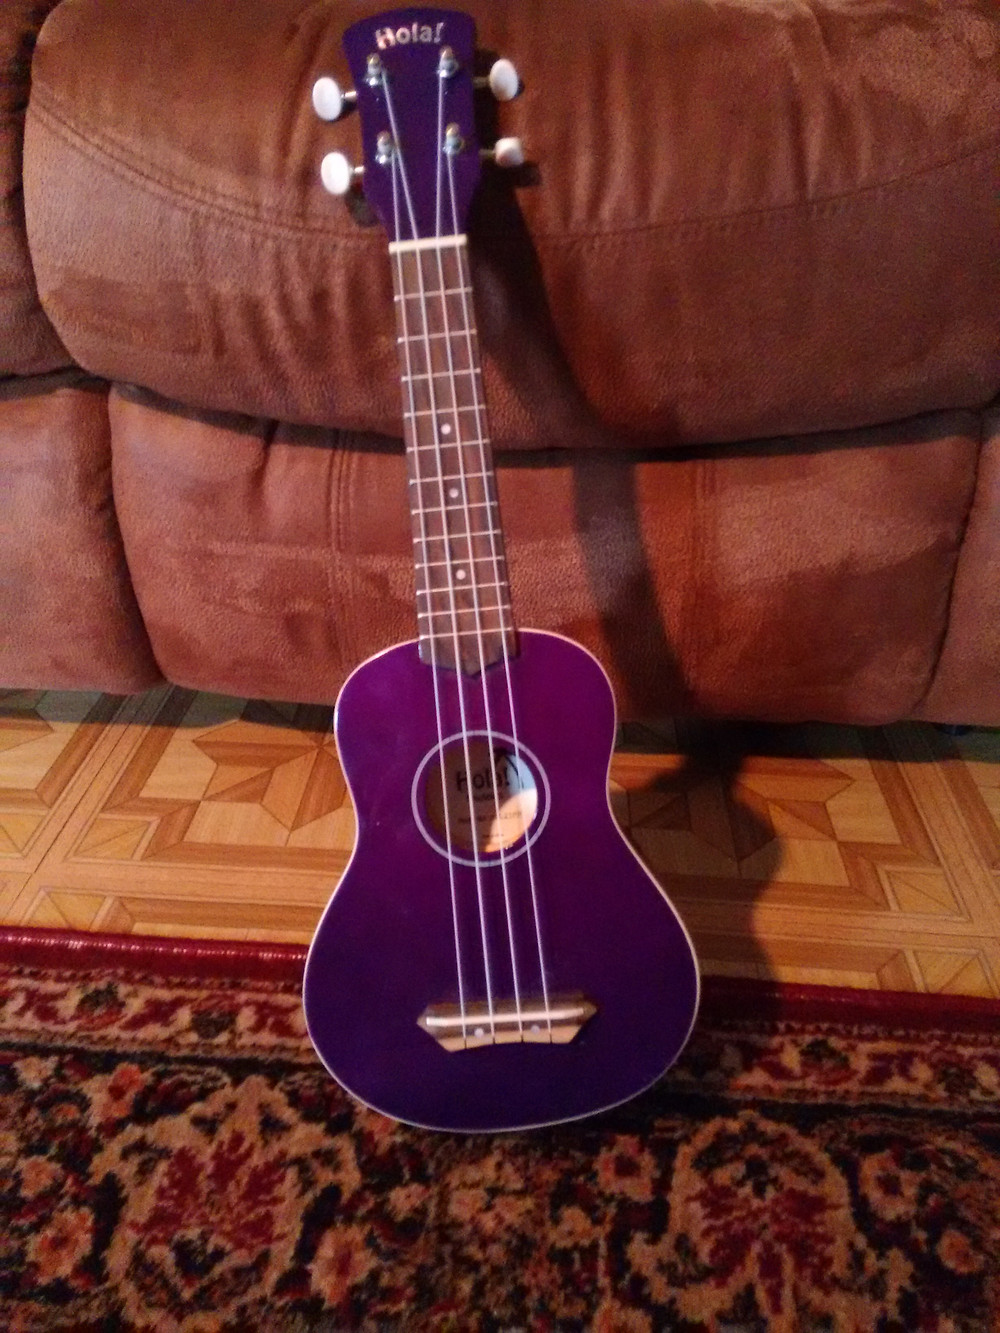 Learning a new instrument is always such fun, and this purple ukulele I borrowed from the studio seems perfect! This is one of the perks of being a music teacher!